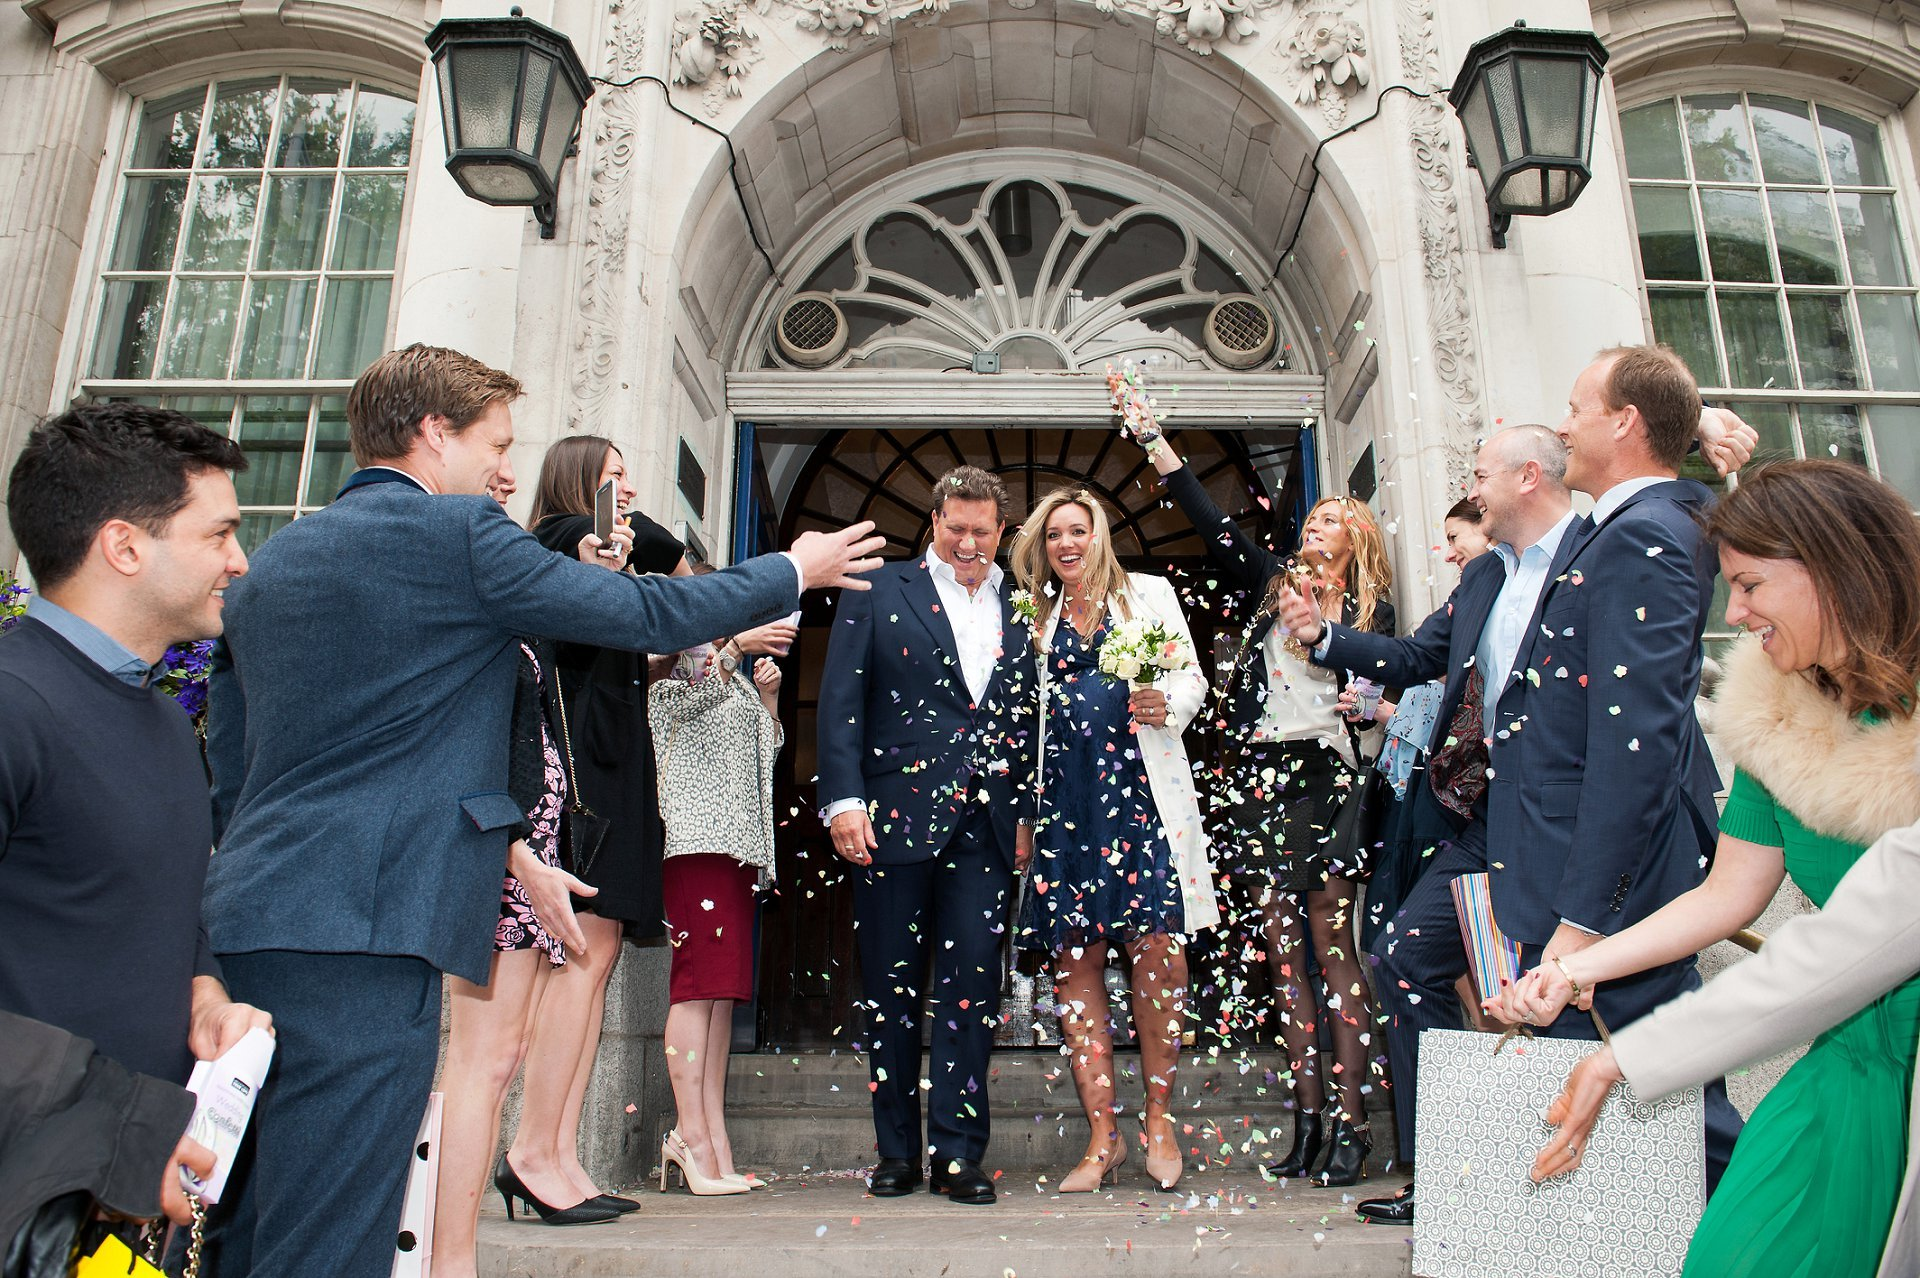 The famous Chelsea Old Town Hall steps with Julian and Emily exiting to a hail of confetti